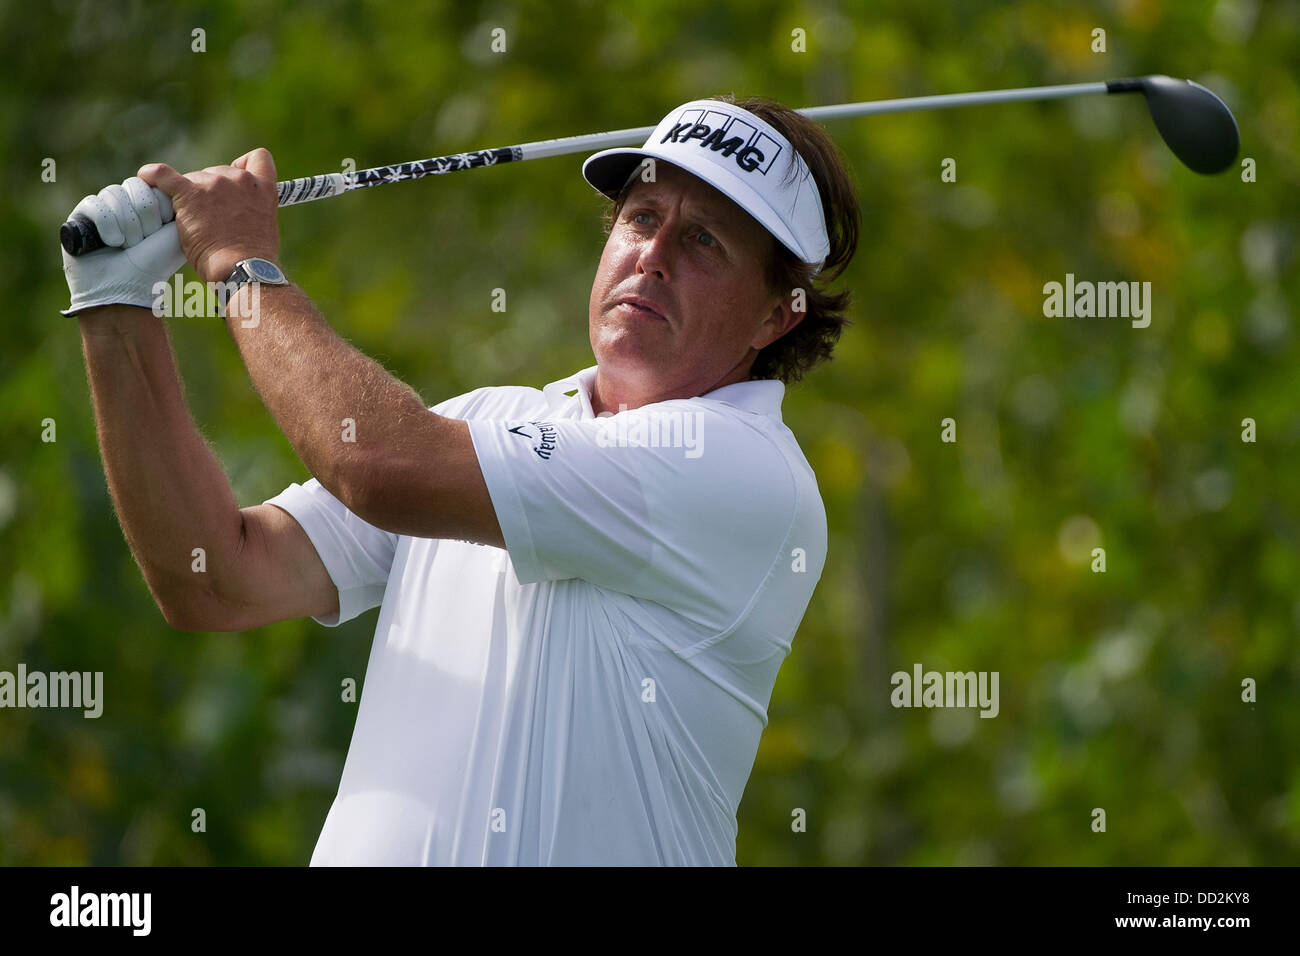 Jersey City, New Jersey, USA. 23rd Aug, 2013. August 23, 2013: Phil Mickelson (USA) tees-off and holds his club - Stock Image